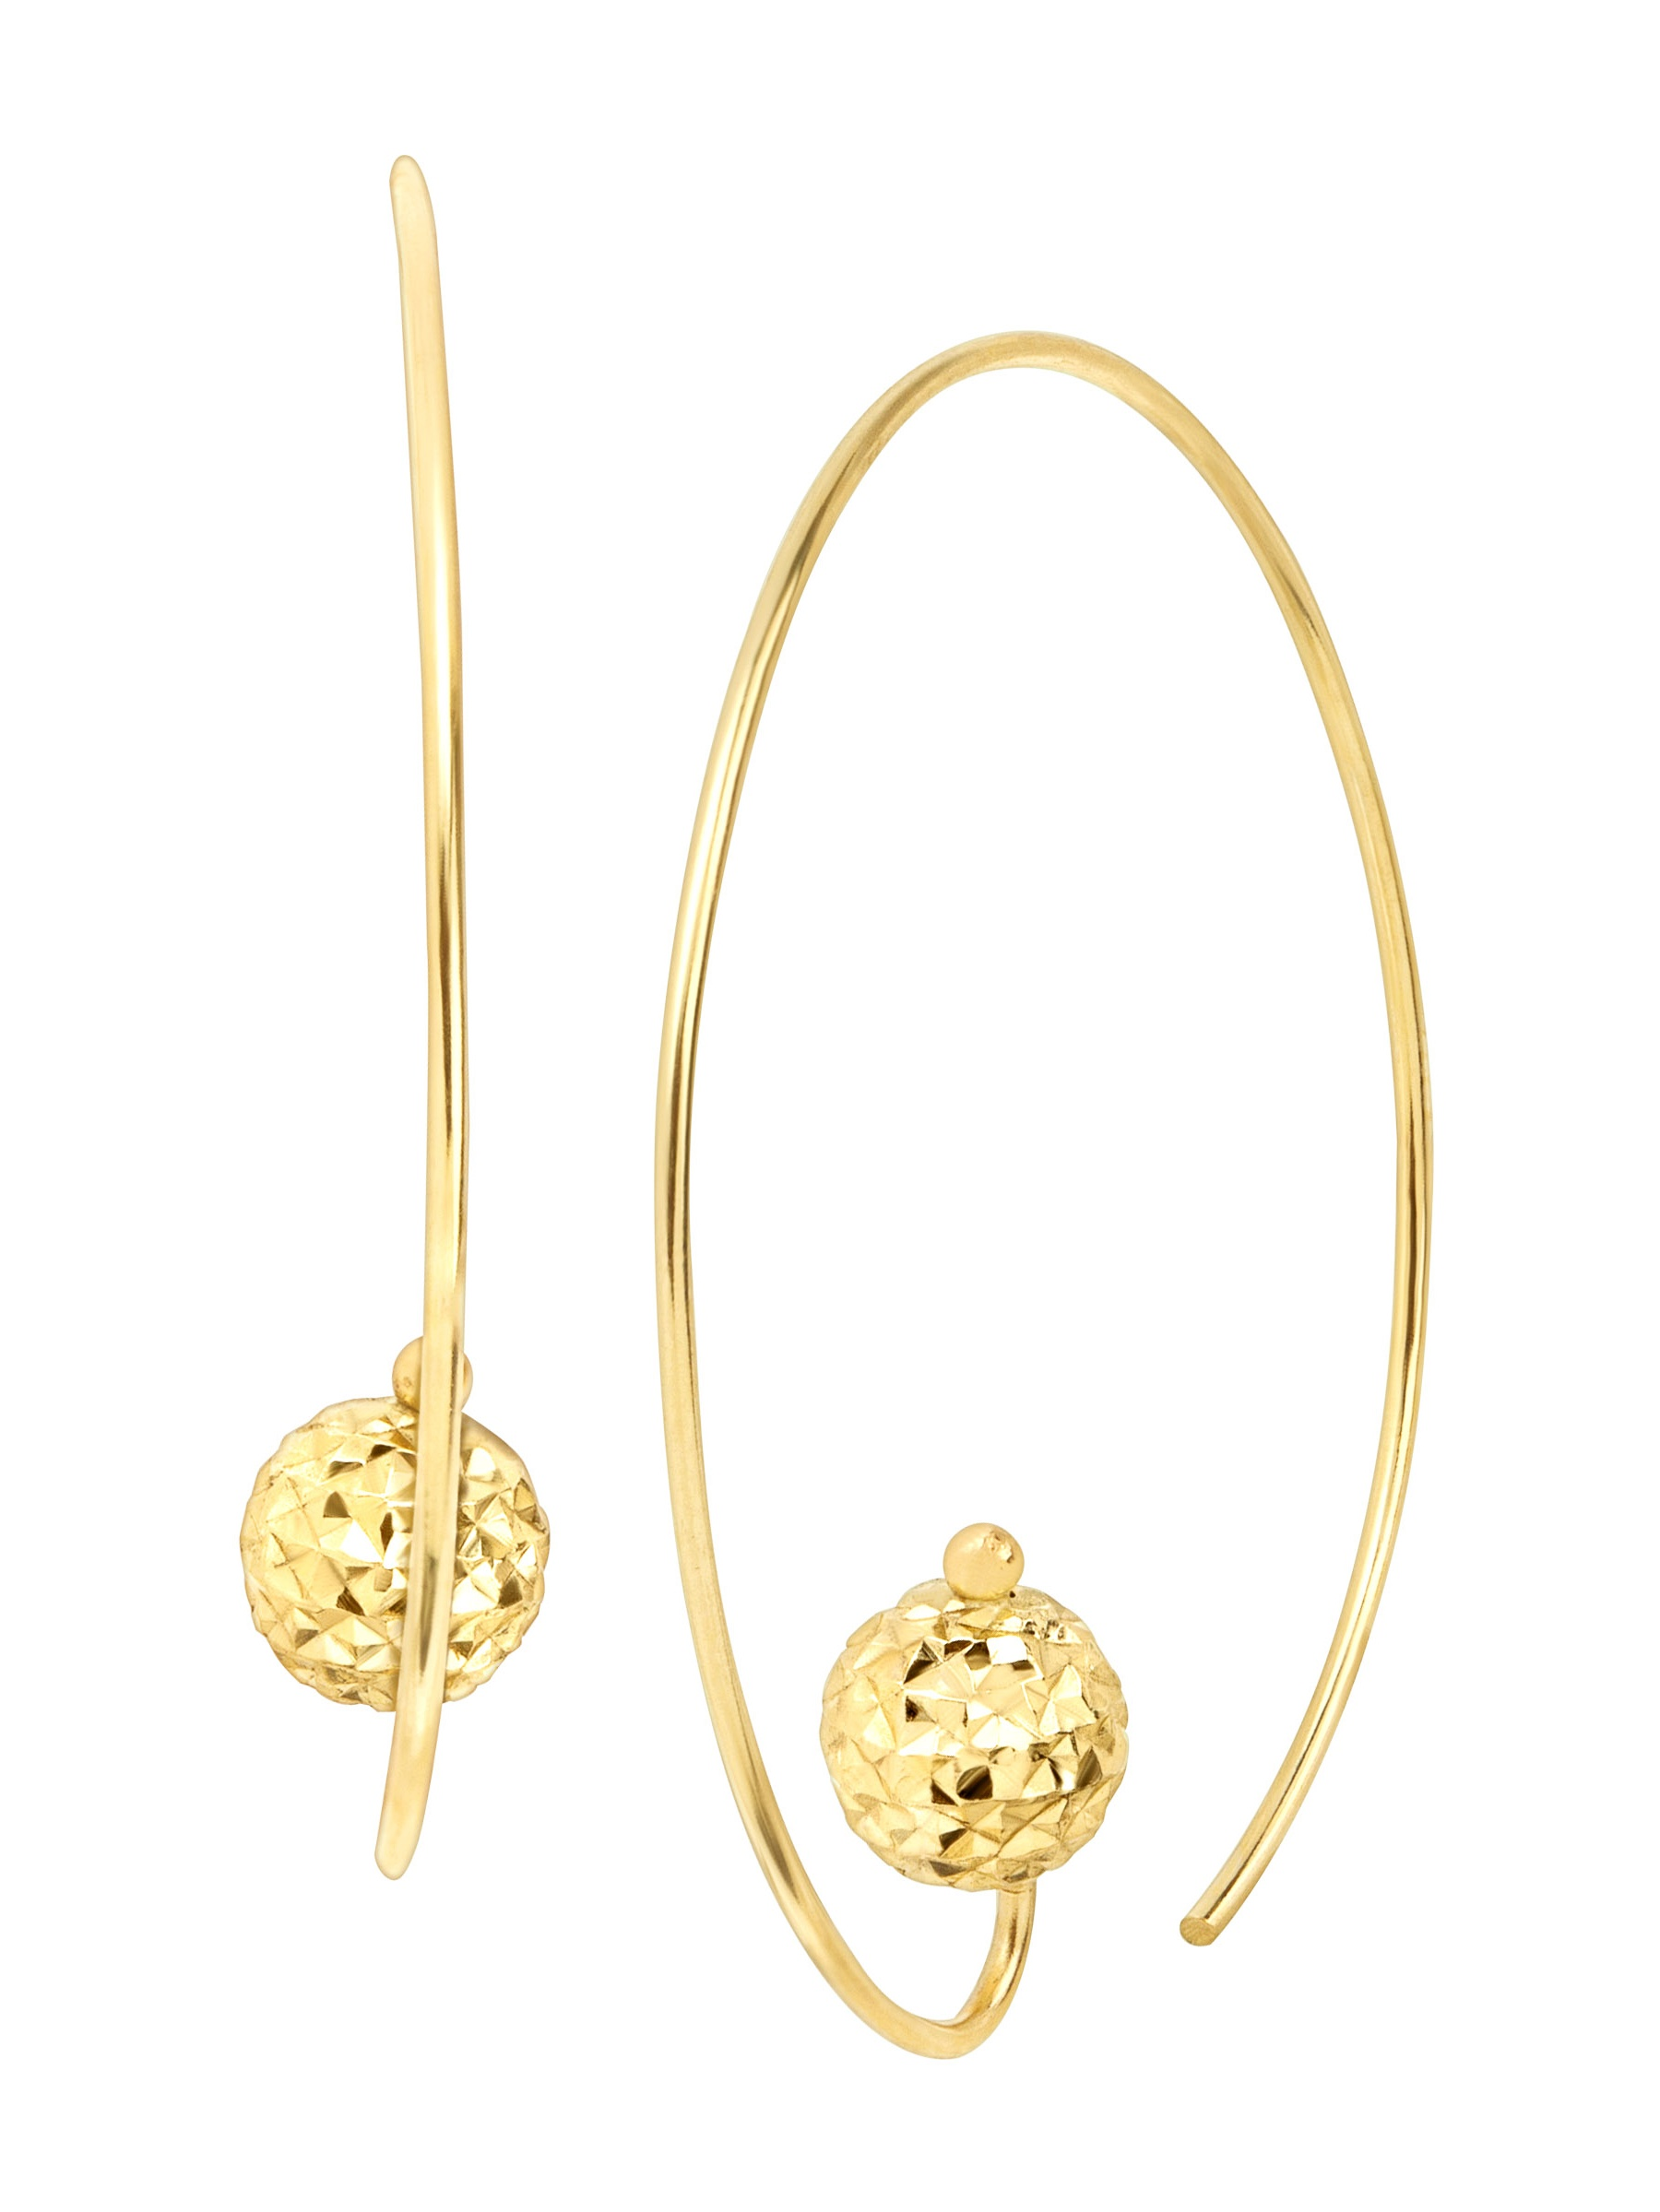 Eternity Gold Wire Hoop Earrings With Textured Bead In 14kt